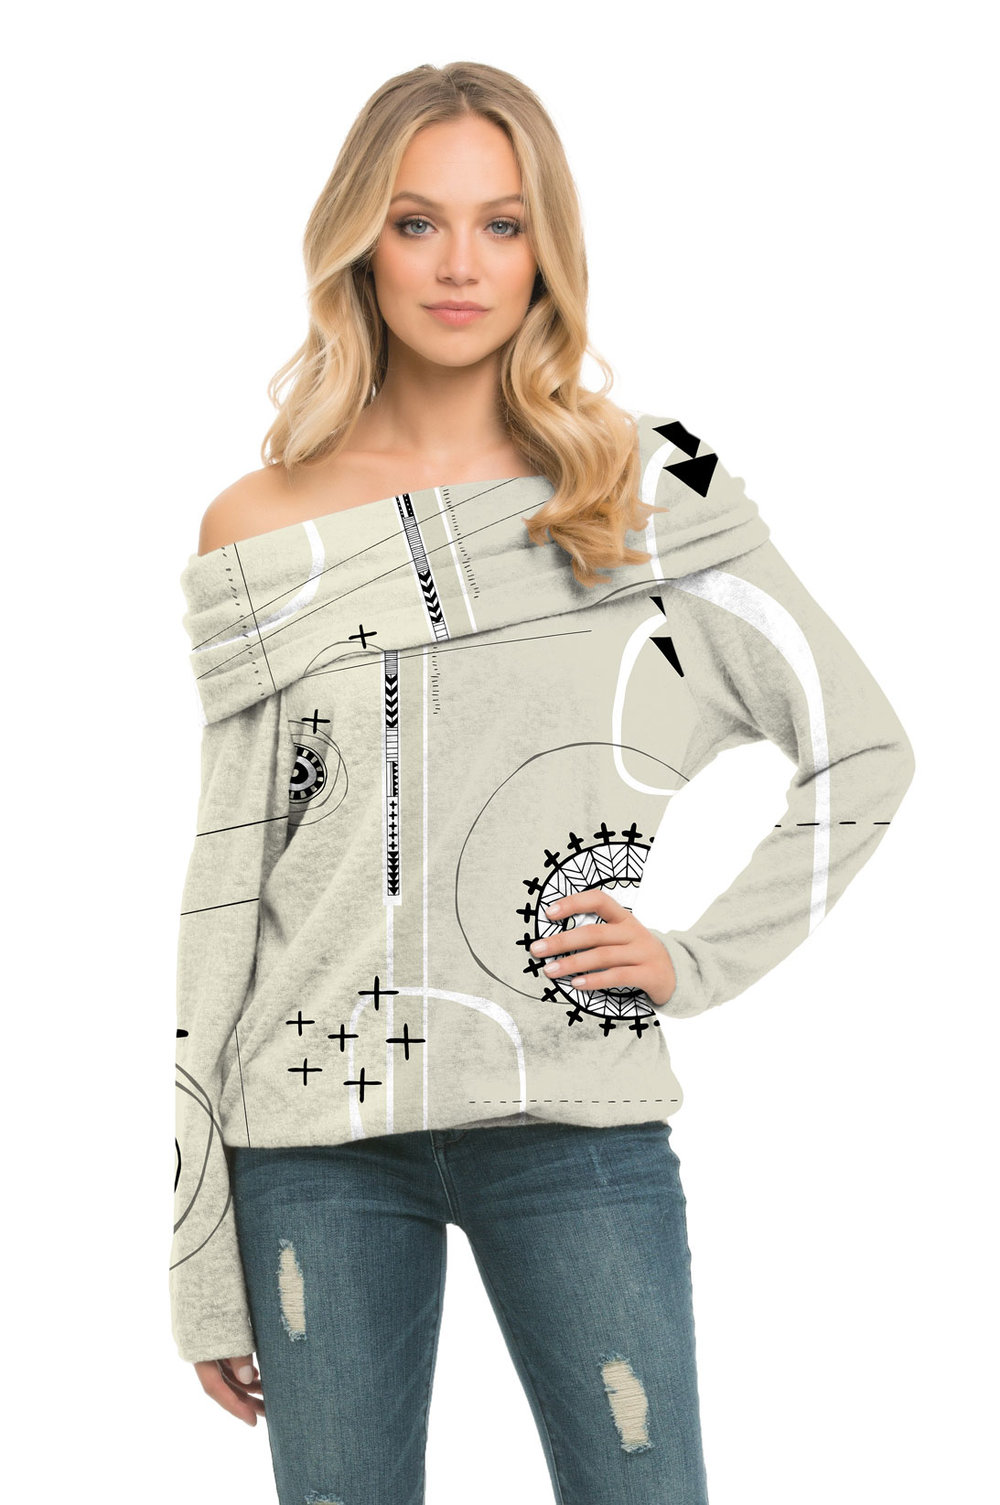 FF-geos-pullover-top-mock-up-MAIN-Pattern.jpg